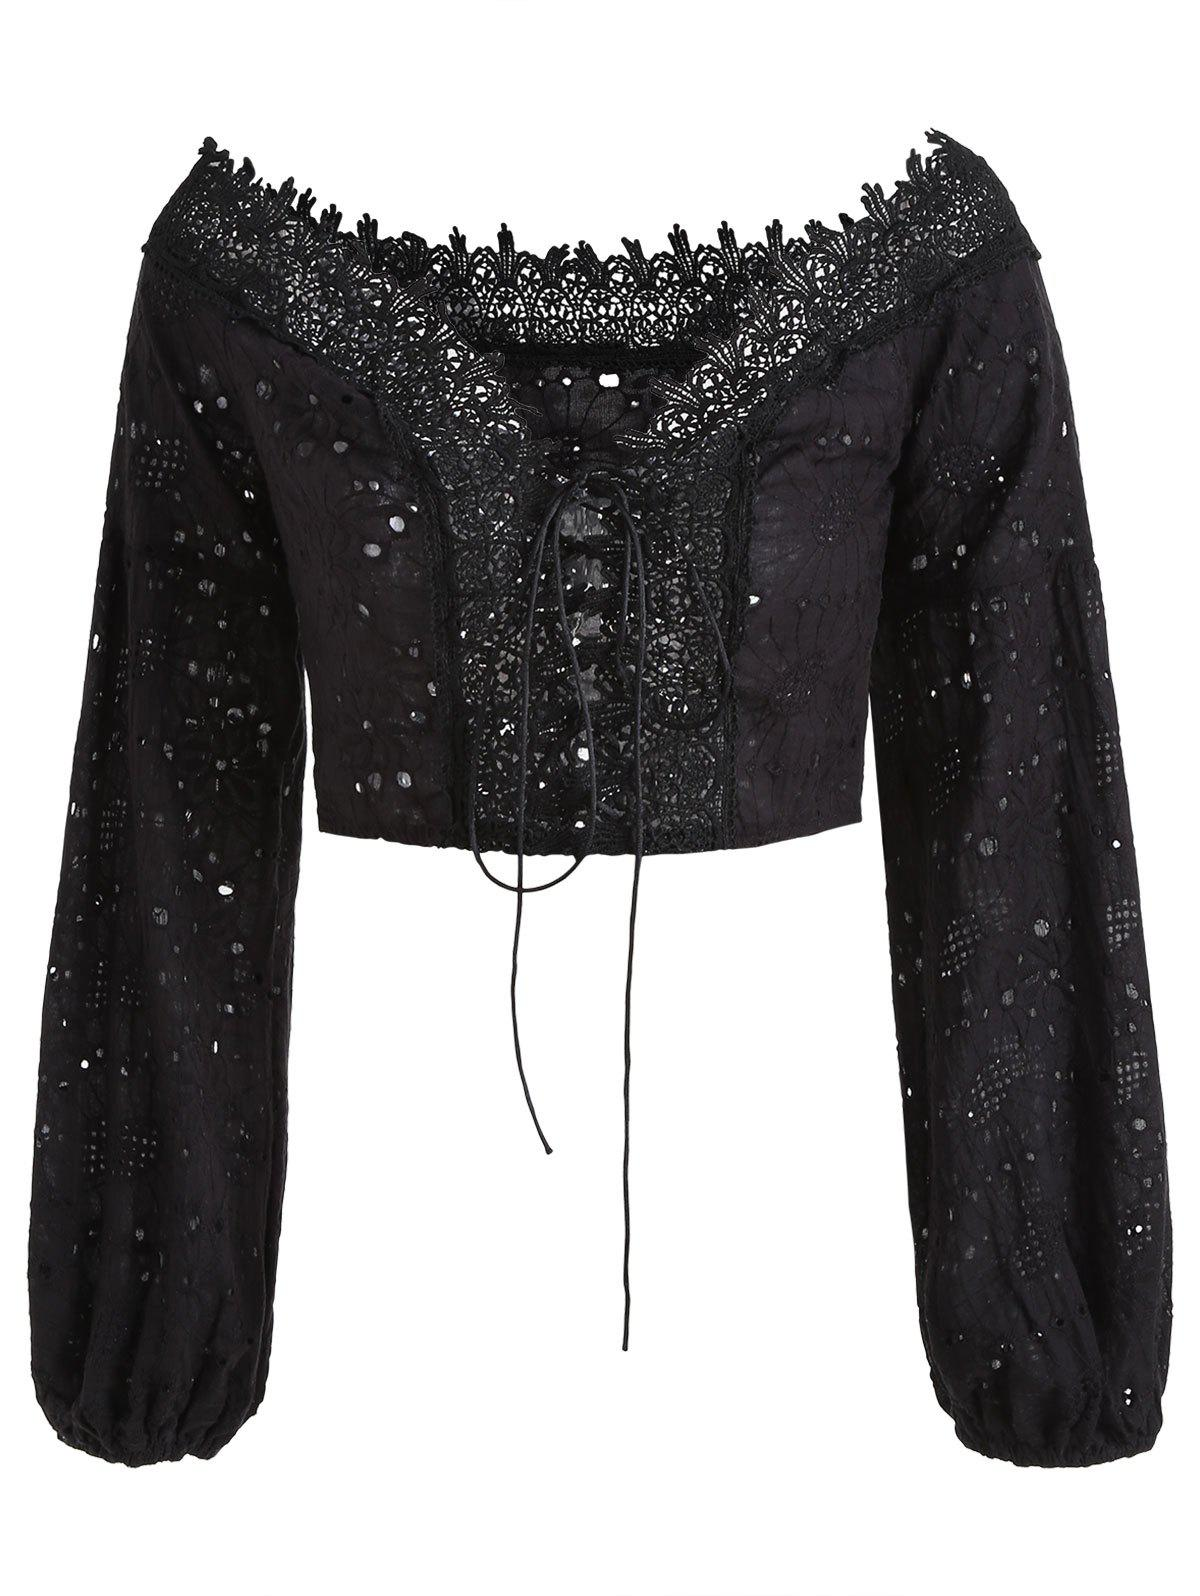 Eyelet Lace-up Off The Shoulder Top - BLACK L